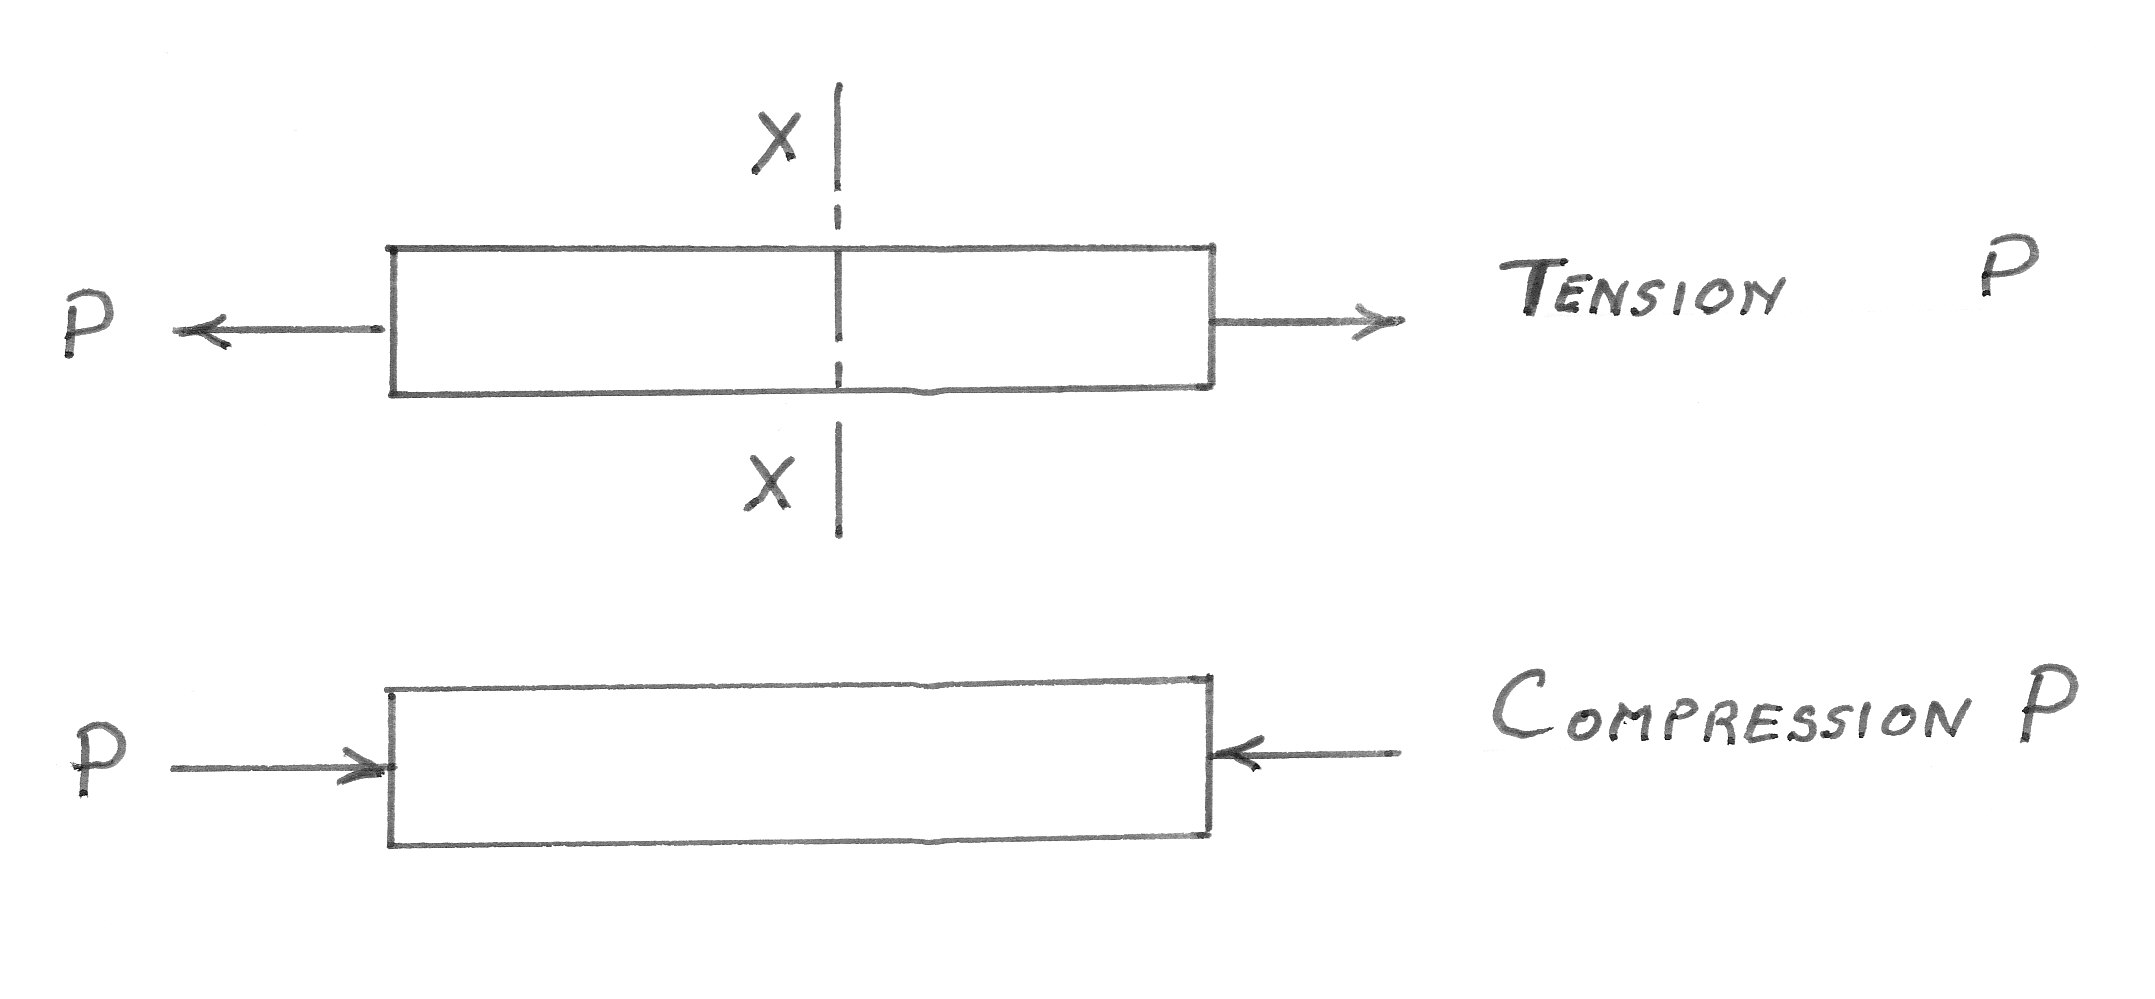 truss tension and compression diagram plate tectonics subduction structural technology